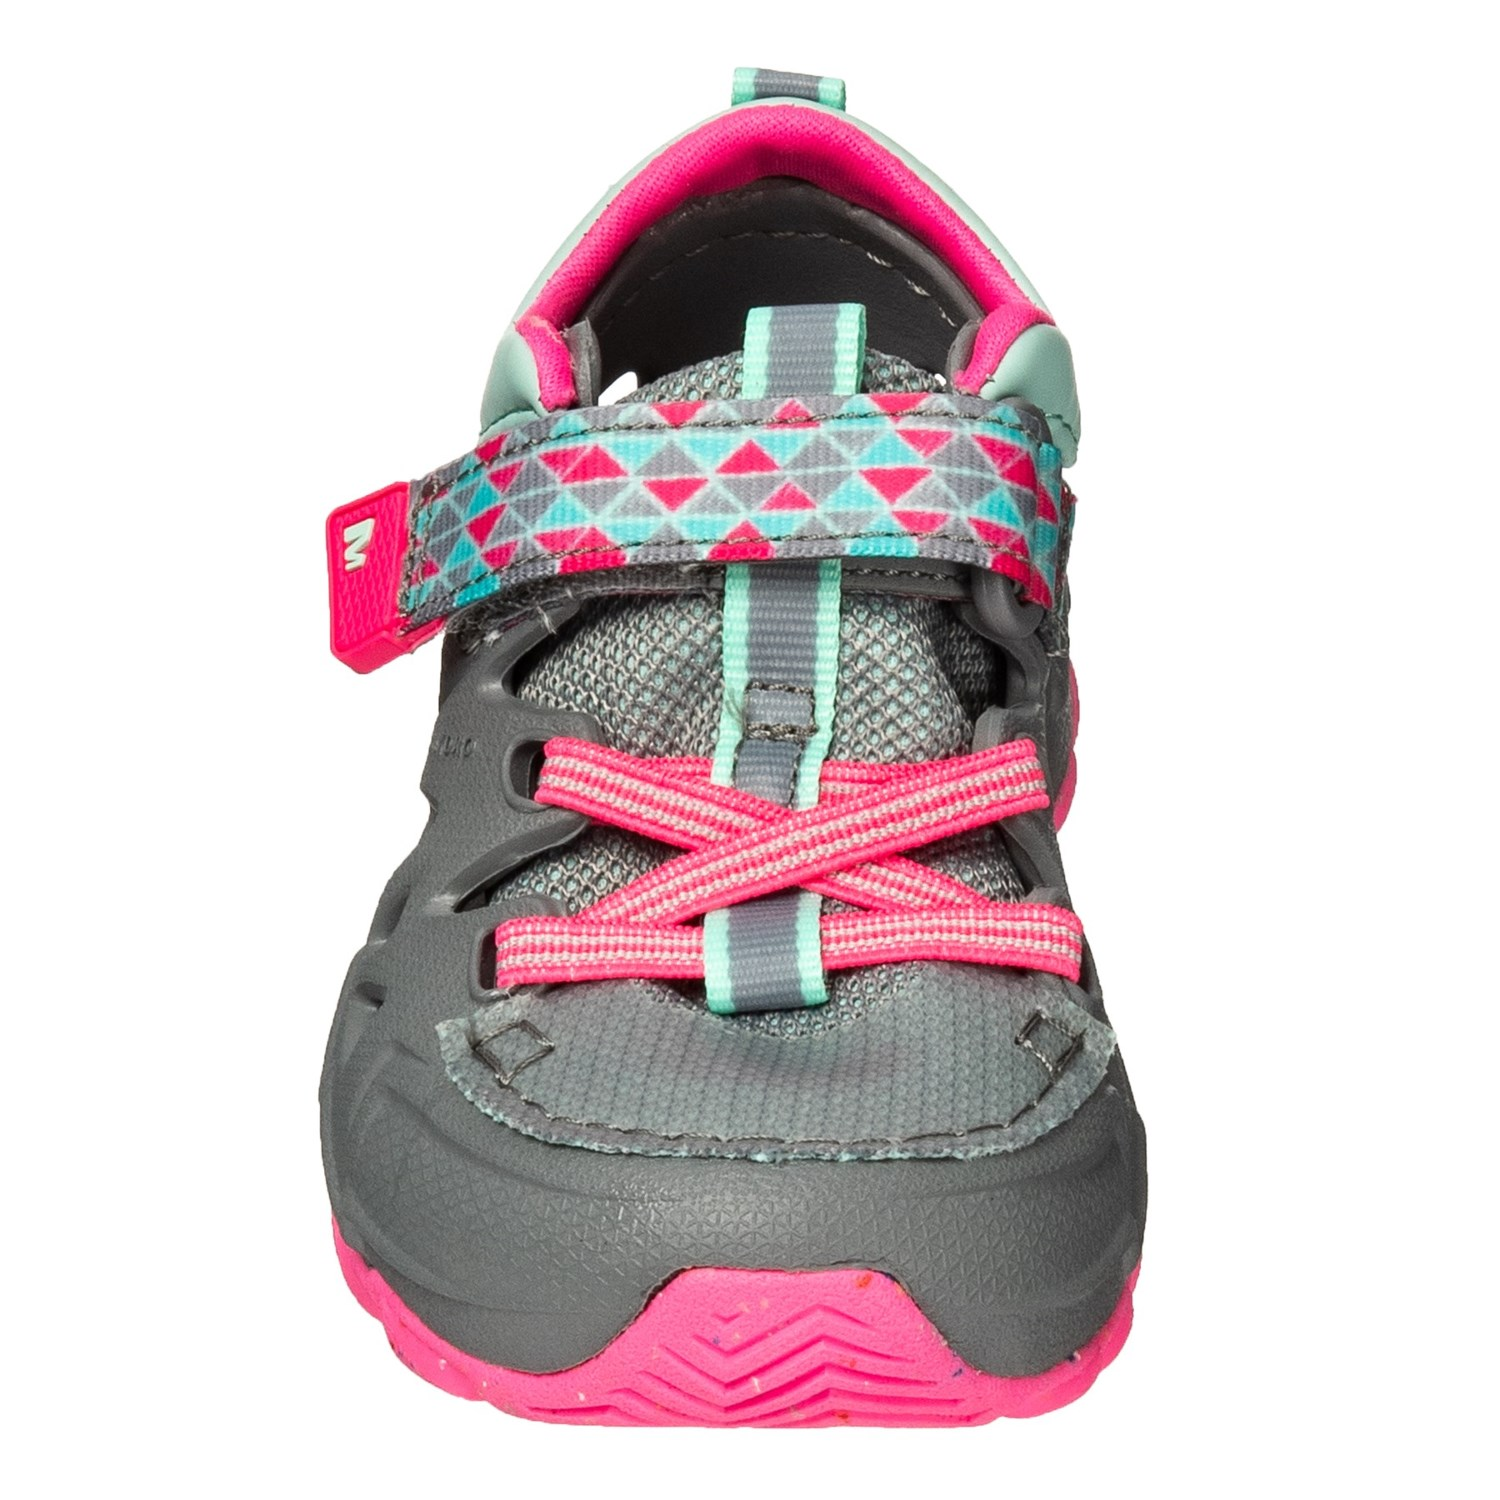 67befe7a747d Merrell Hydro Junior WATER SHOE (For Toddler Girls) - Save 37%